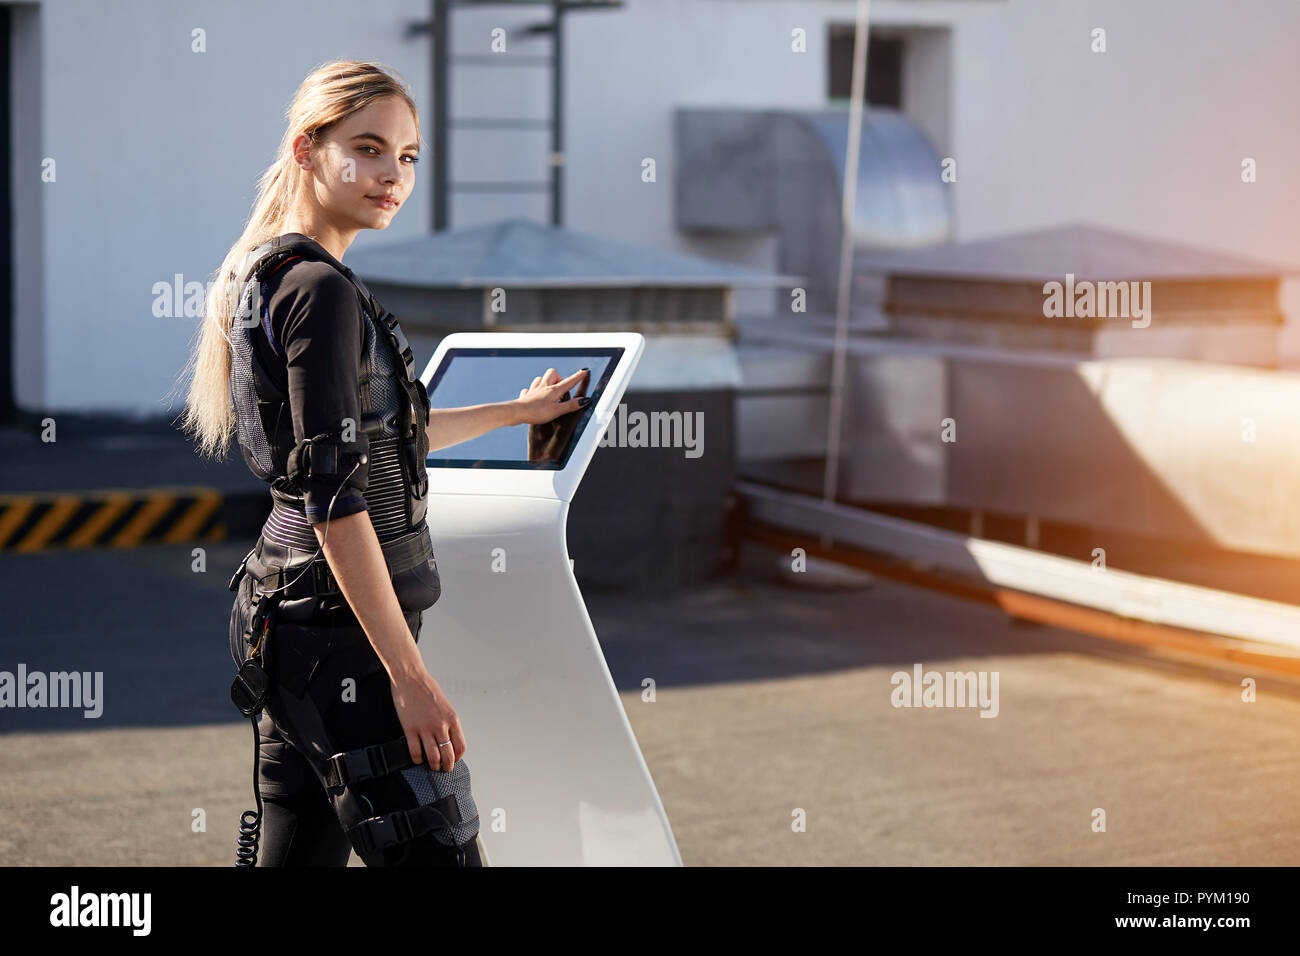 Back view photo of pleasant woman pushing on screen on EMS machine - Stock Image